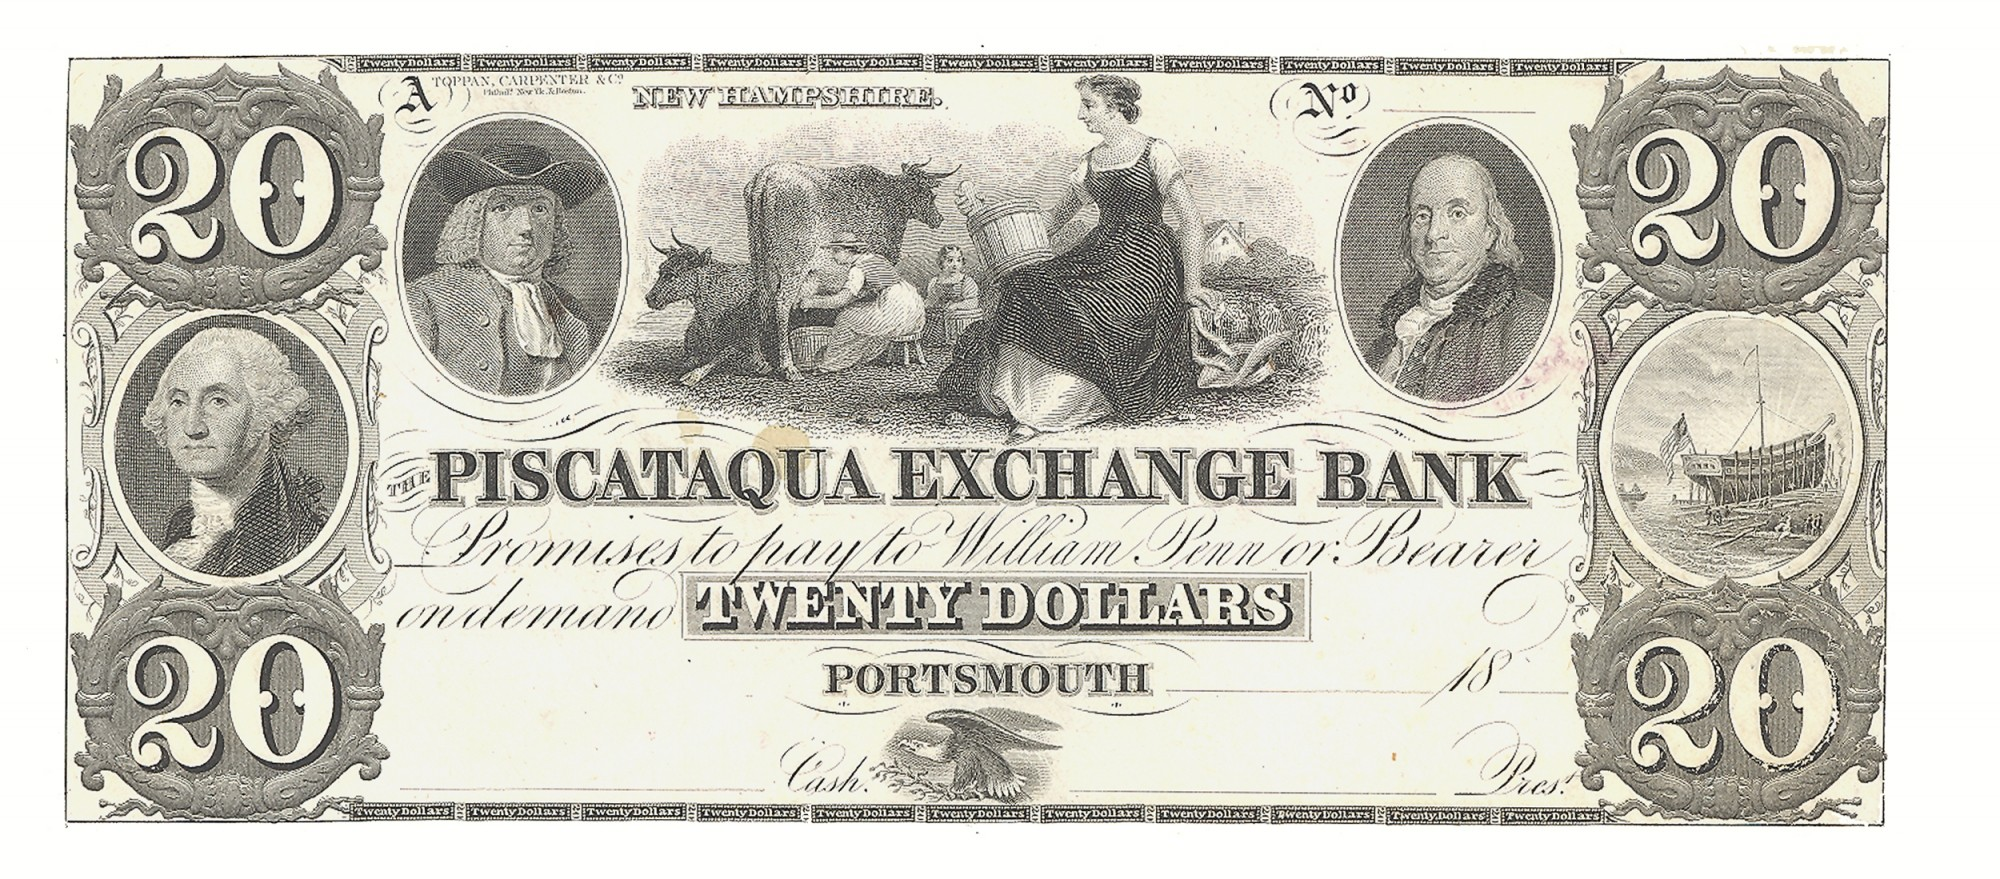 THE PISCATAQUA EXCHANGE BANK, PORSTMOUTH, NEW HAMPSHIRE, $20 NOTE